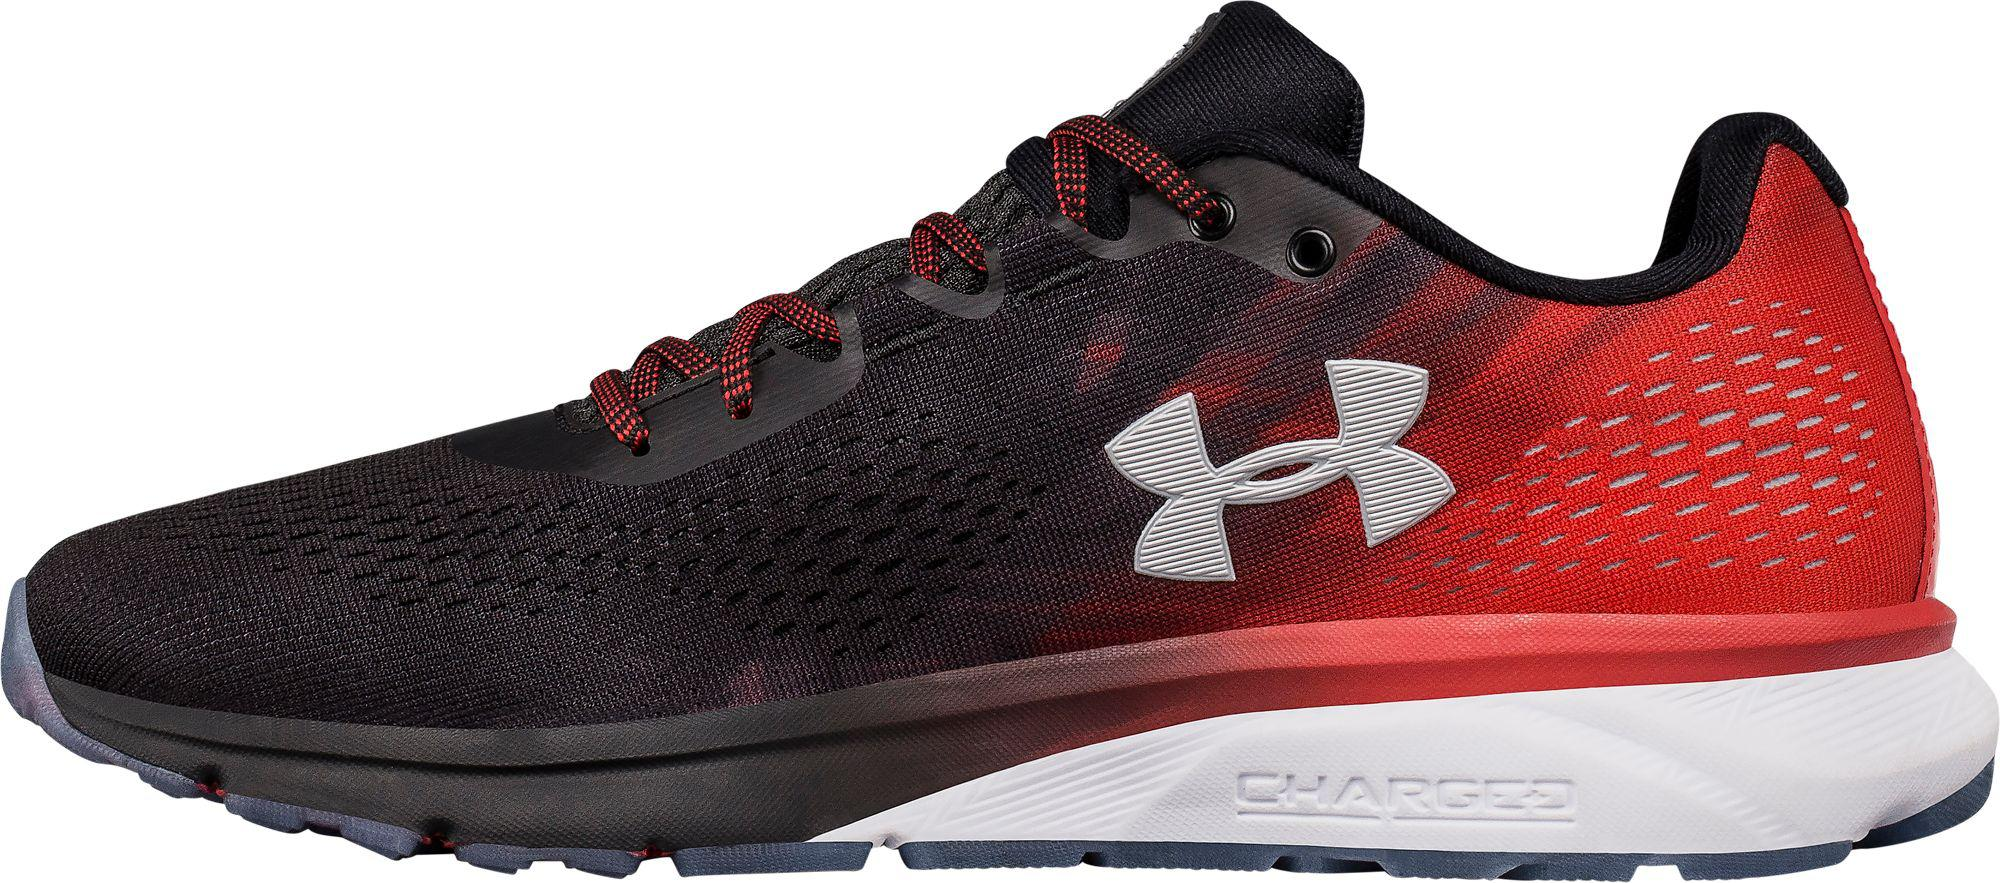 under armour charged patriot shoes off